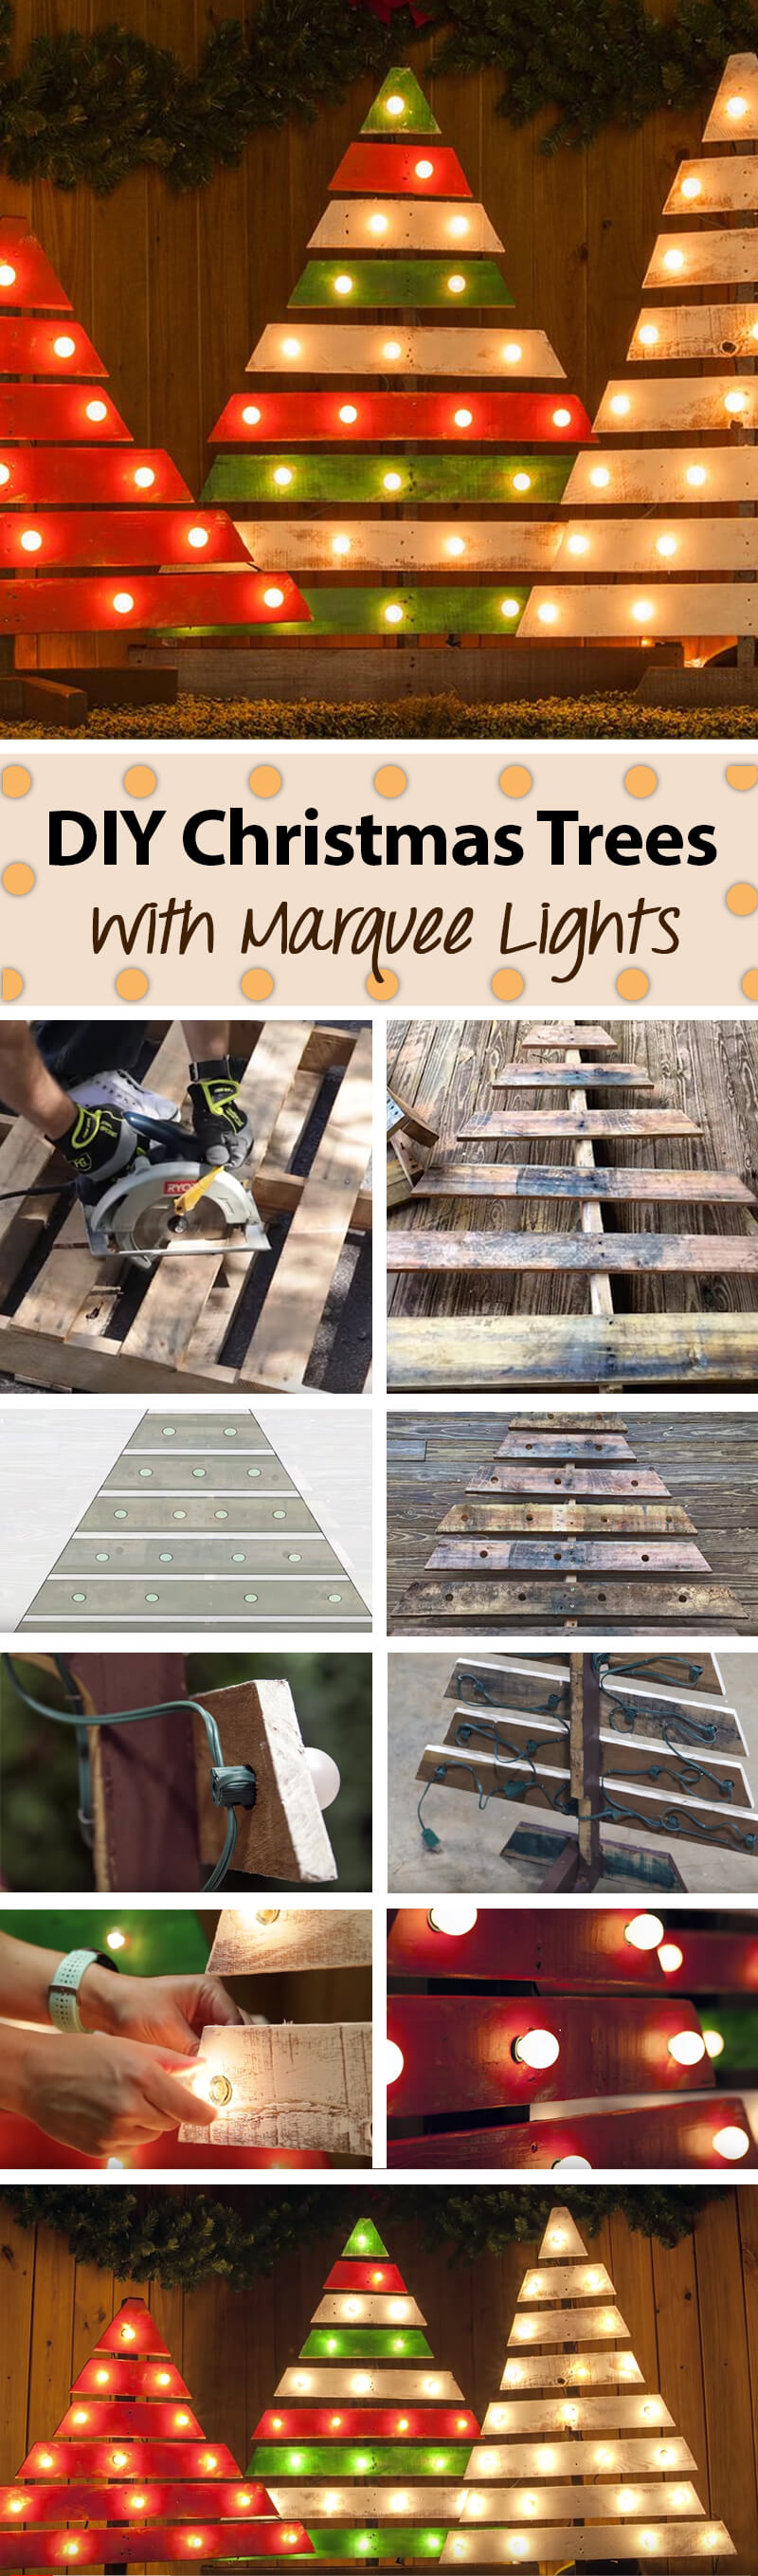 Repurposed Wood Pallet with Marquee Lighting